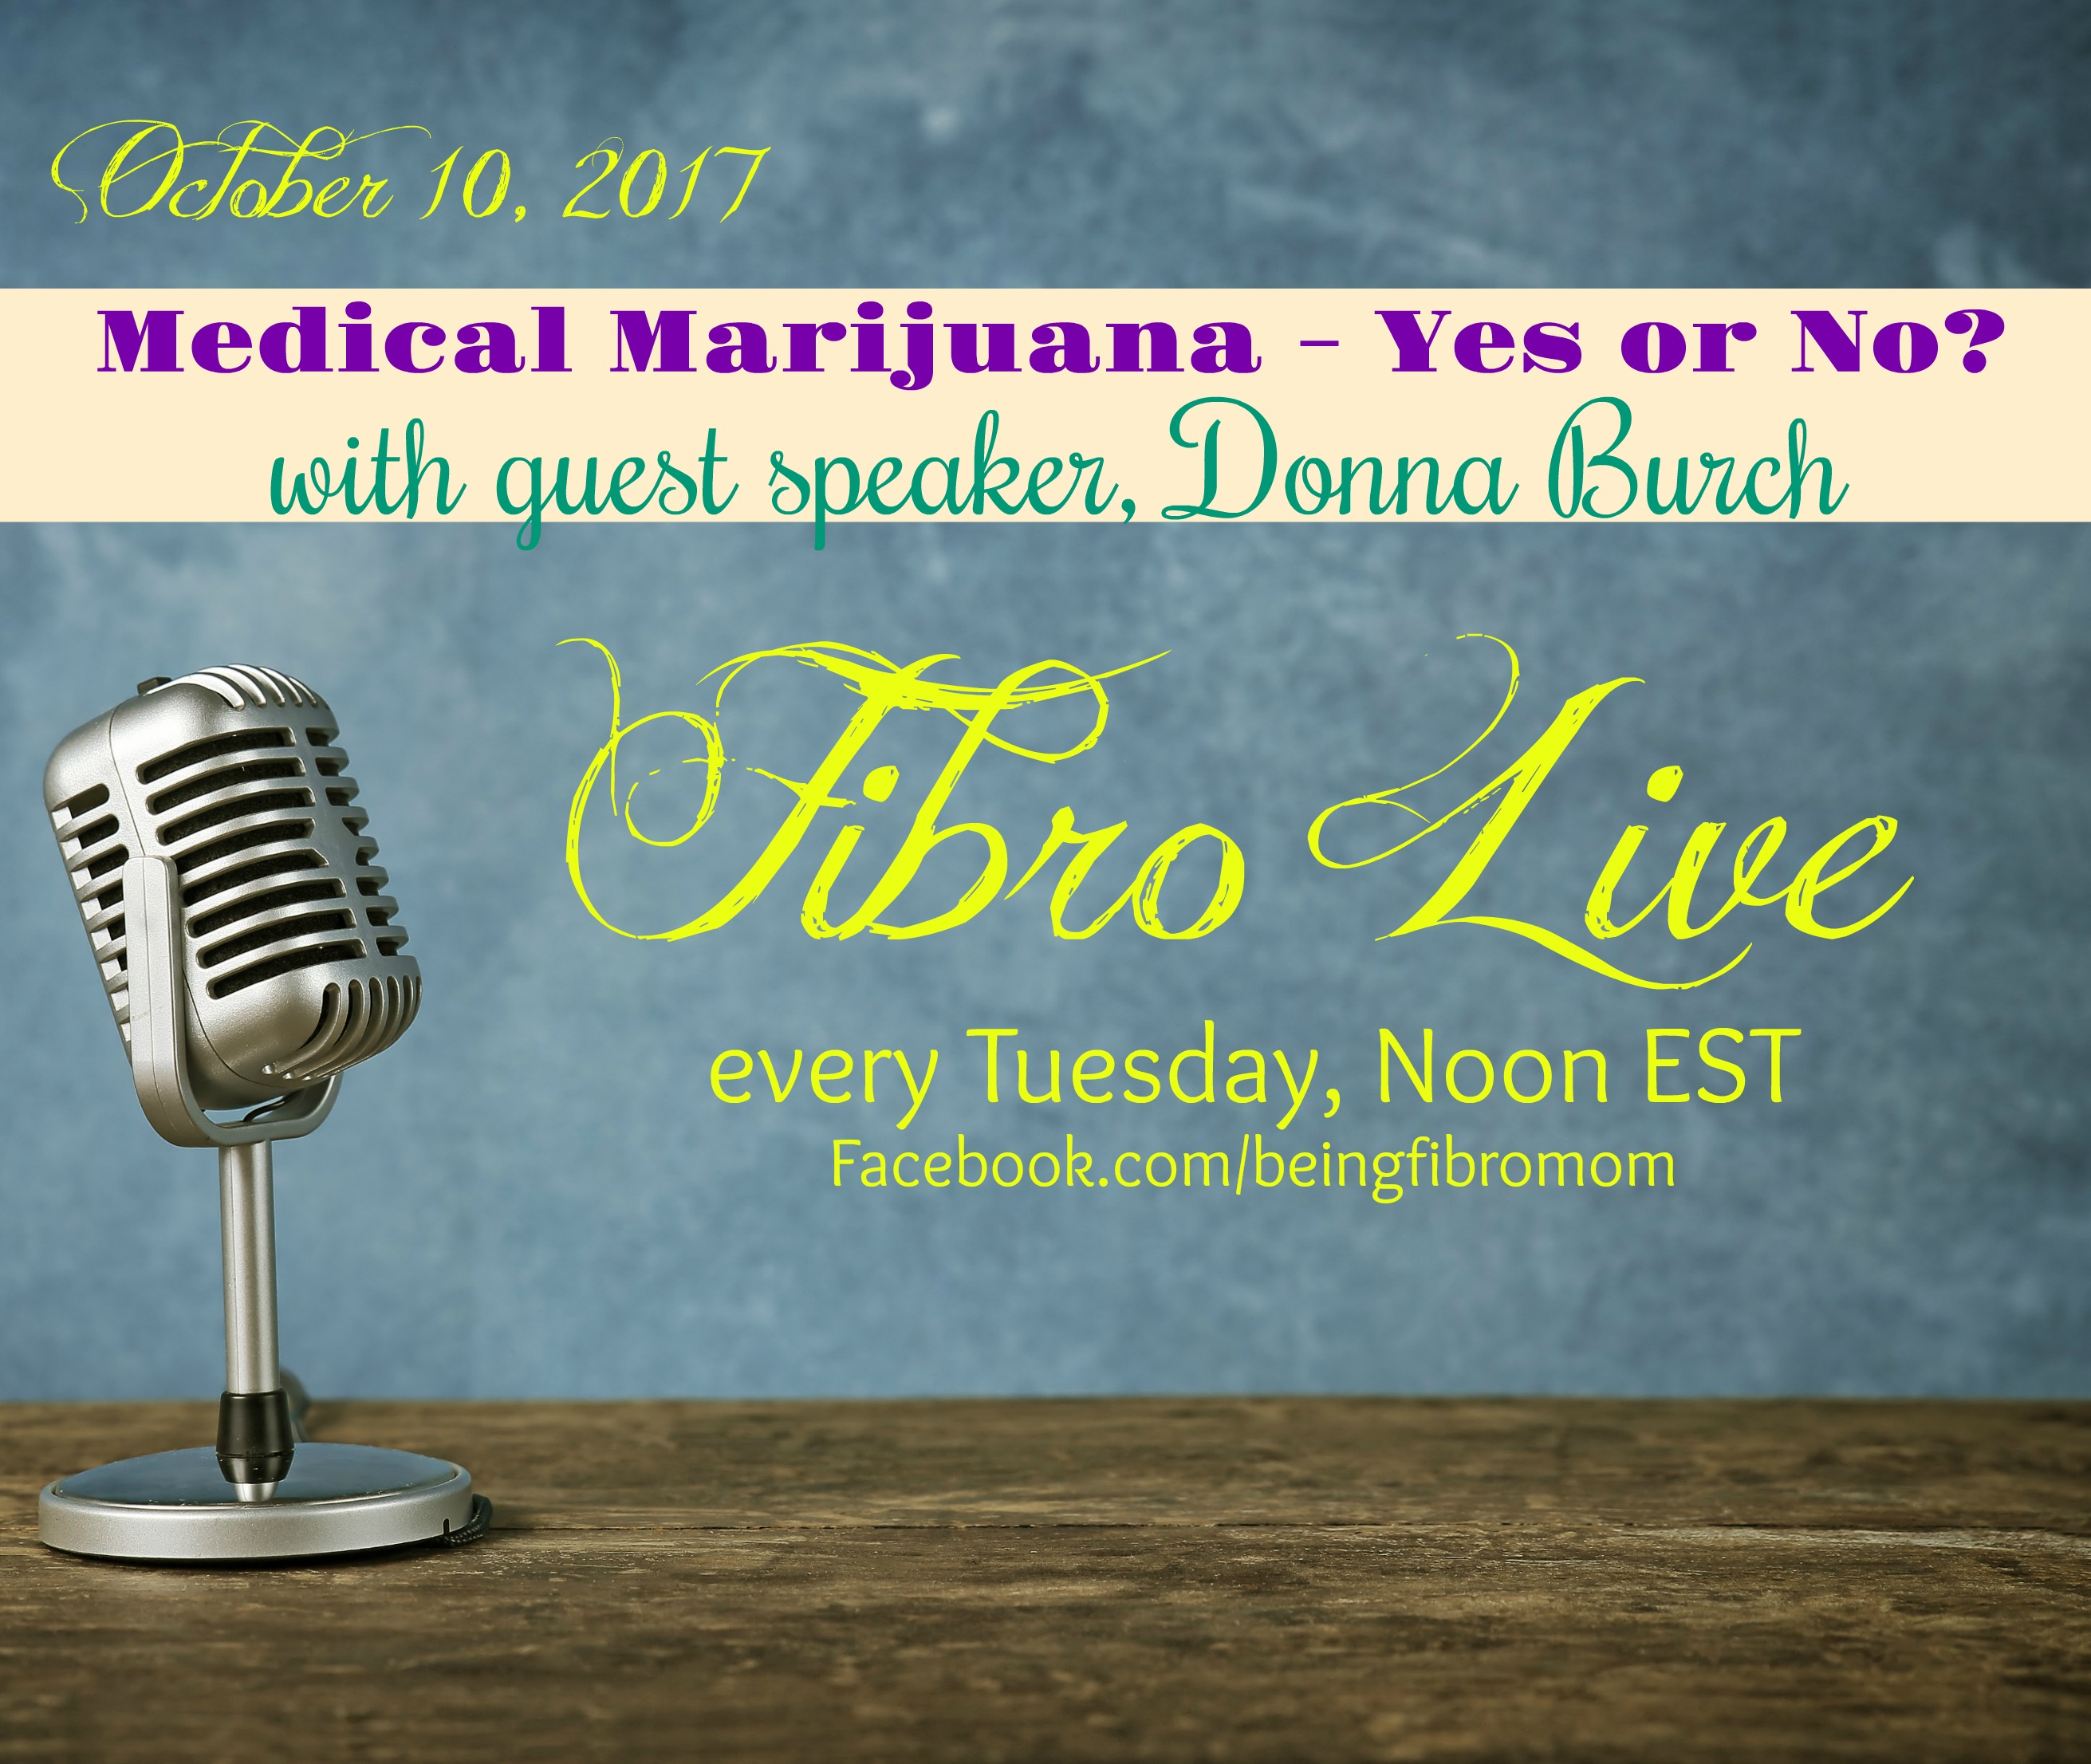 Medical marijuana yes or no? #medicalmarijuana #FibroLive